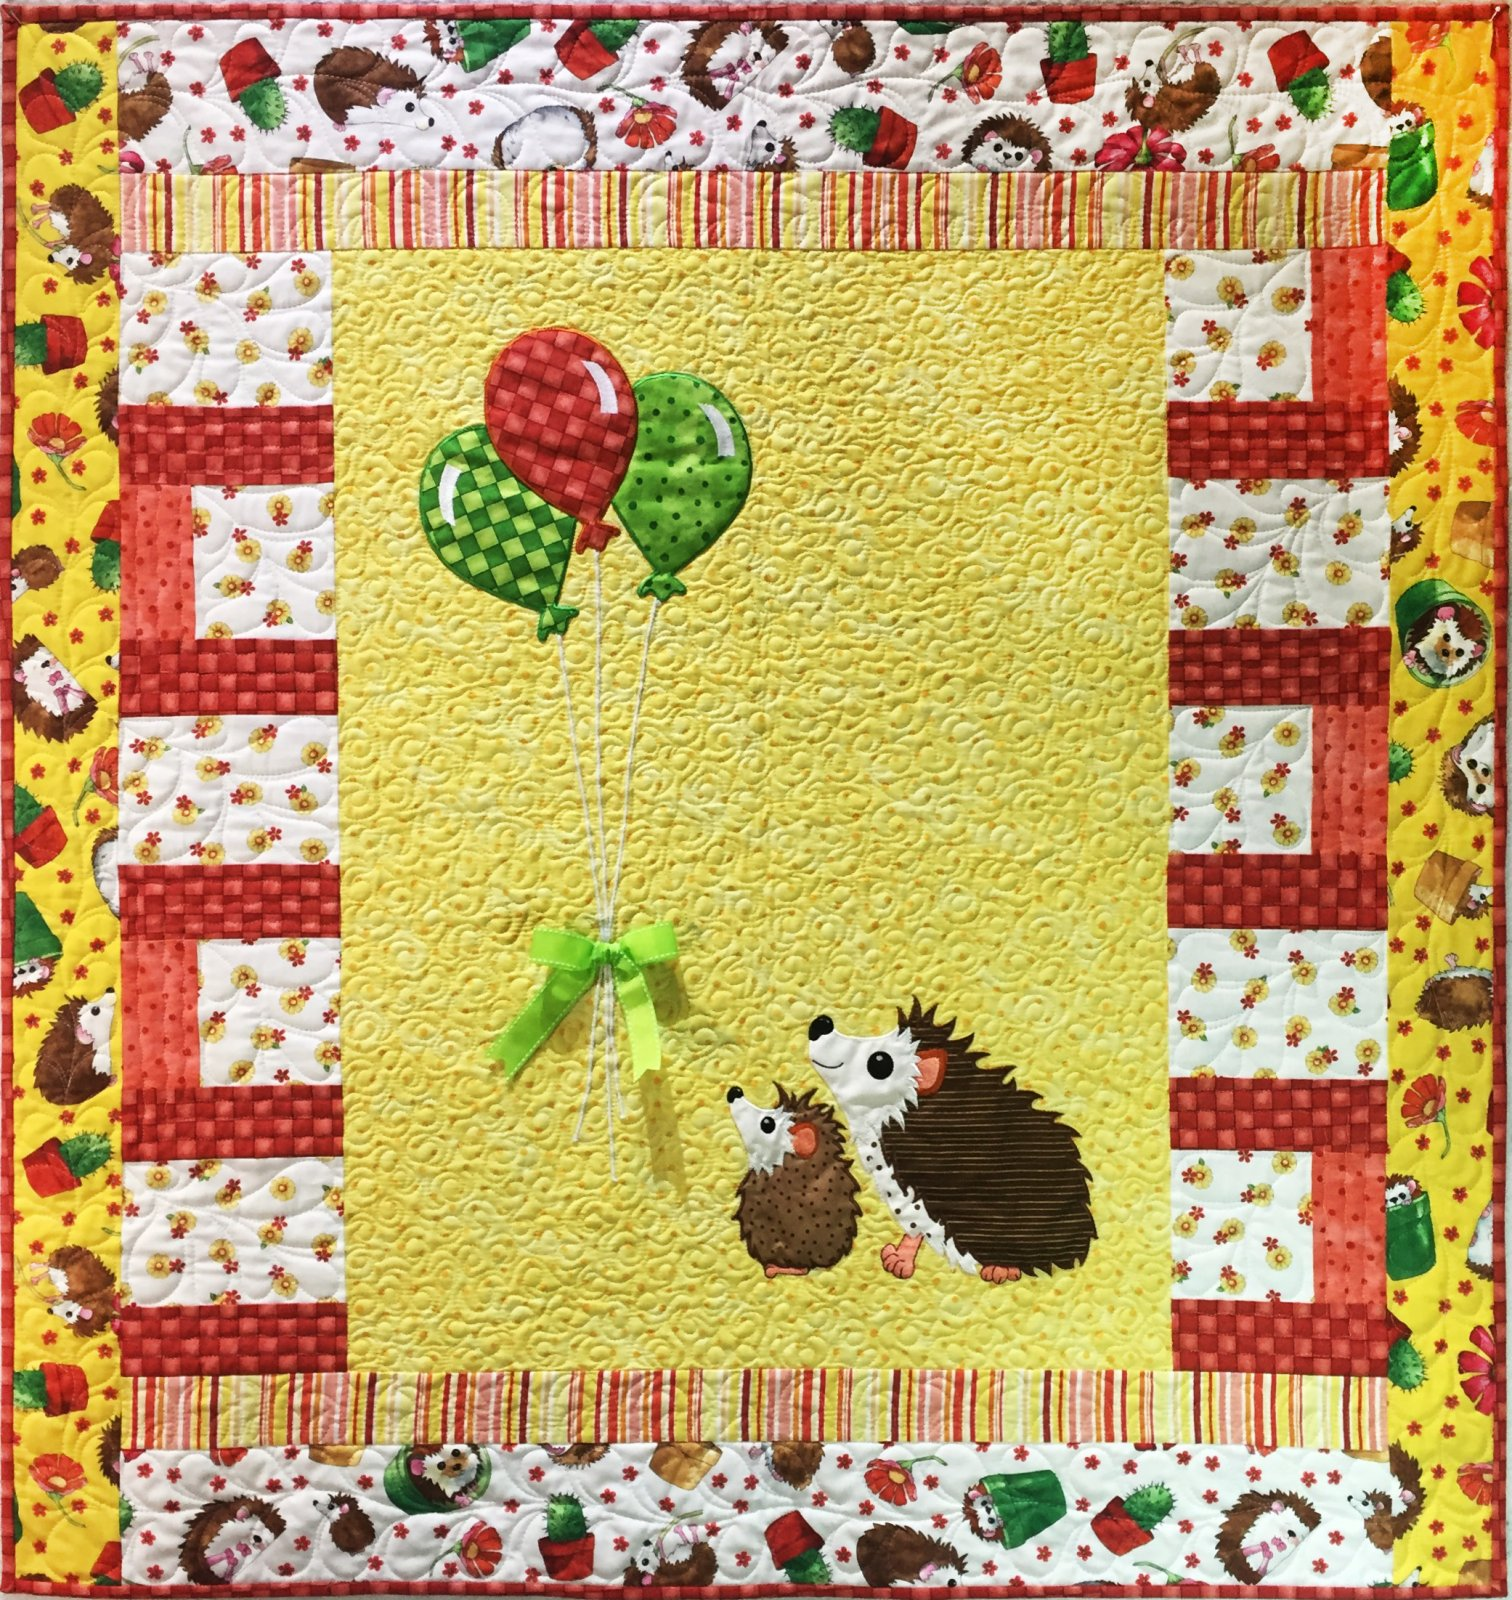 Up Up and Away Applique Quilt Pattern (BQ-13) - 700381585423